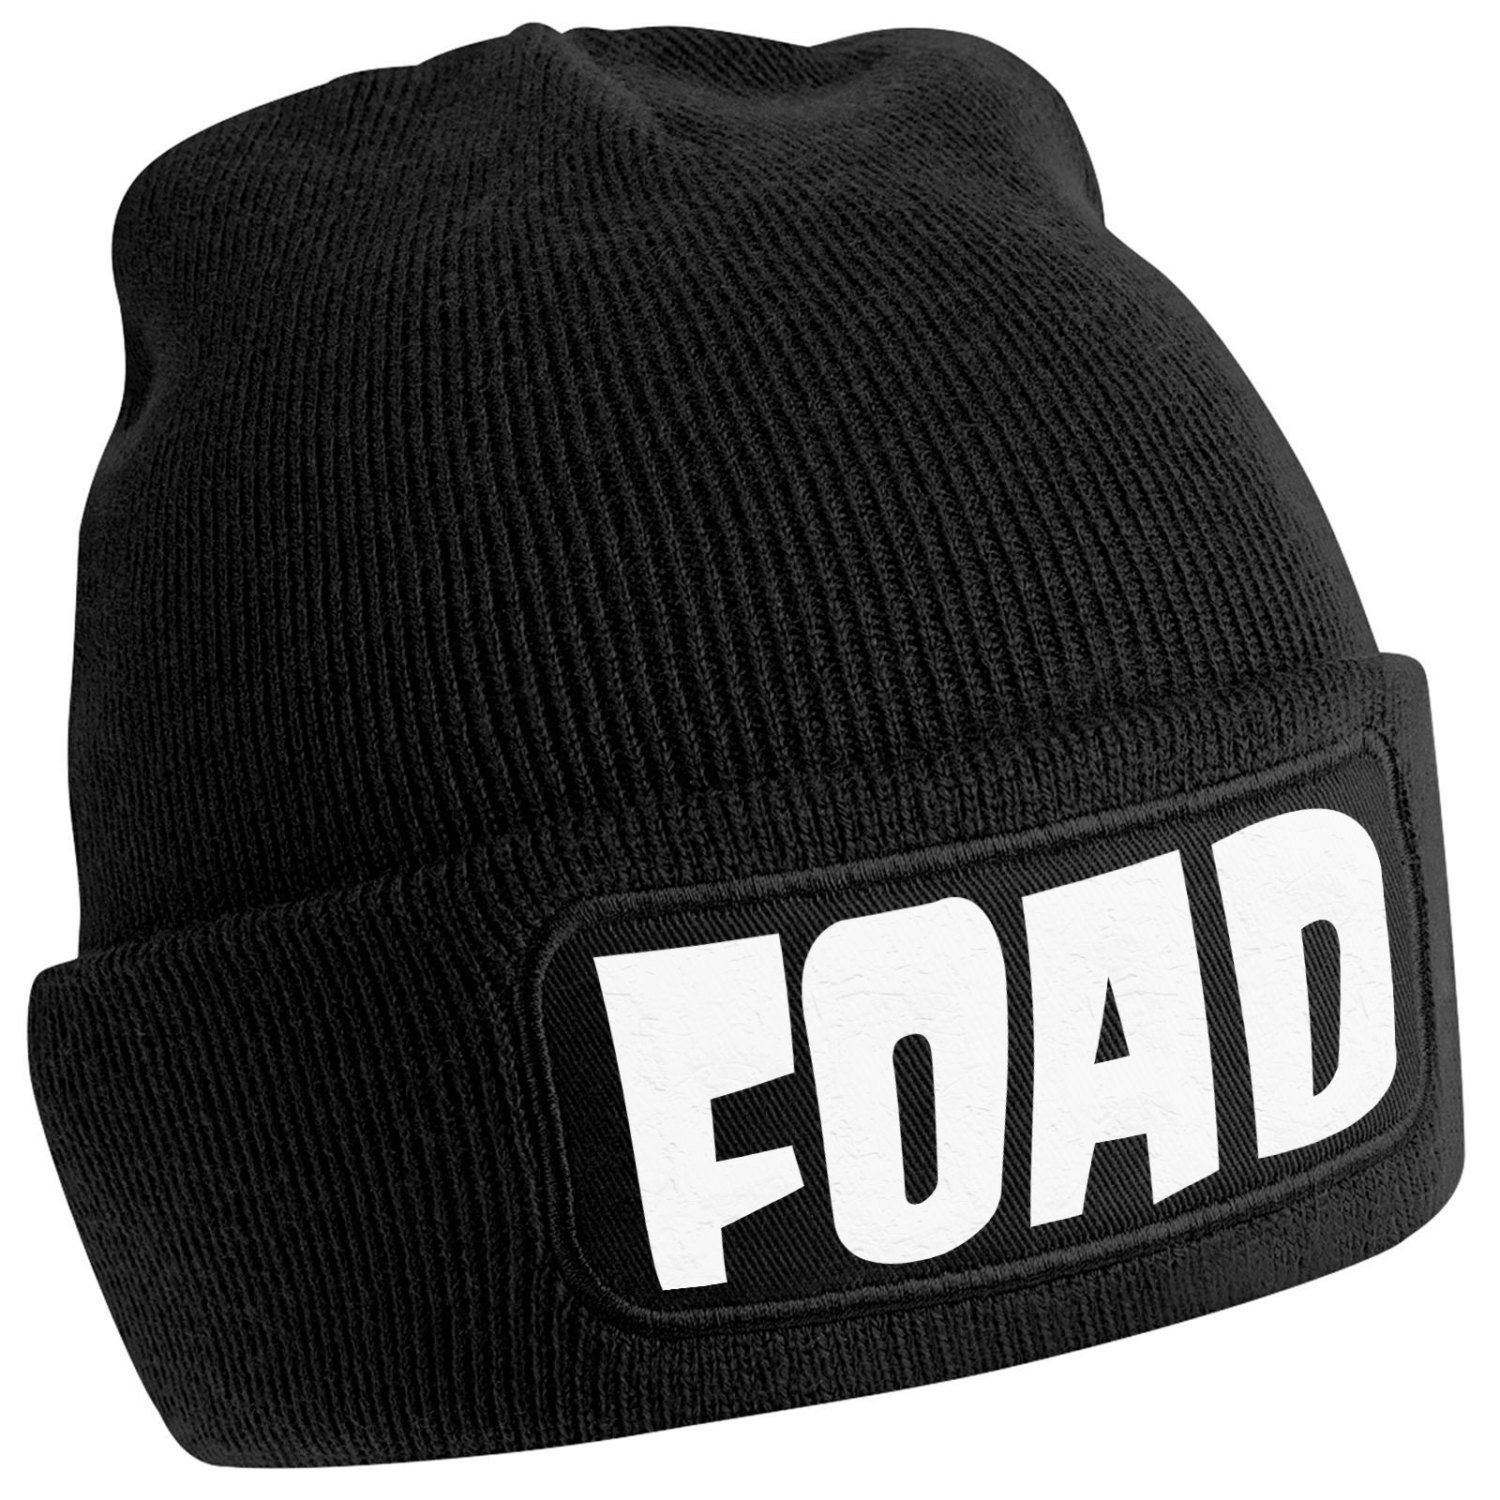 "Primary image for FOAD Beanie Hat - 100 percent Acrylic with cotton twill screen printed patch ""-"